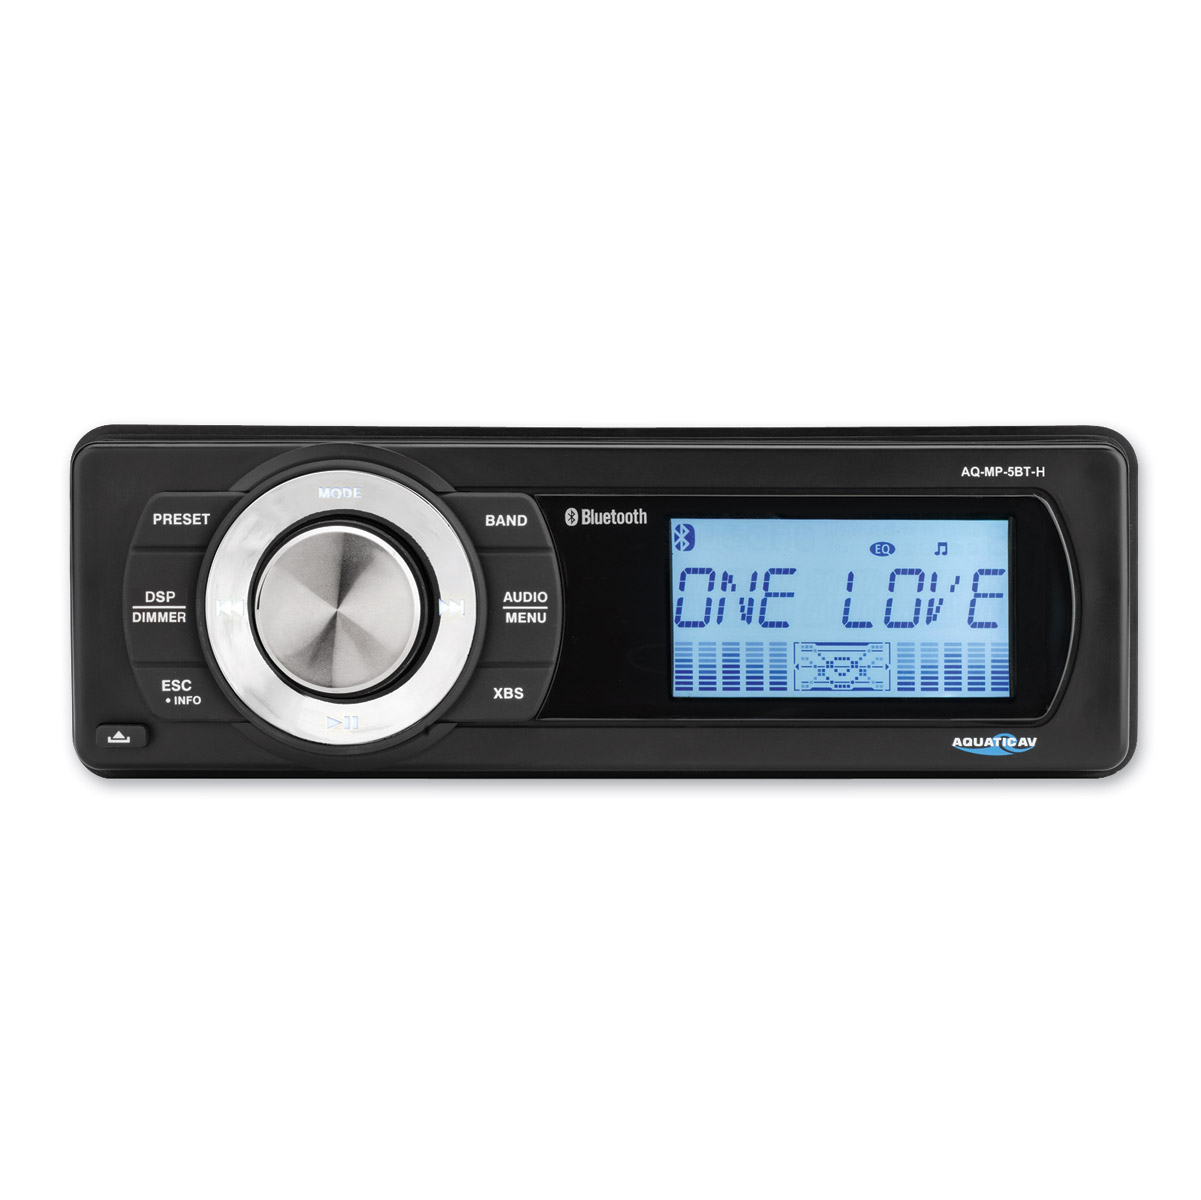 206 671_A aquatic av bluetooth stereo 206 671 j&p cycles  at mifinder.co